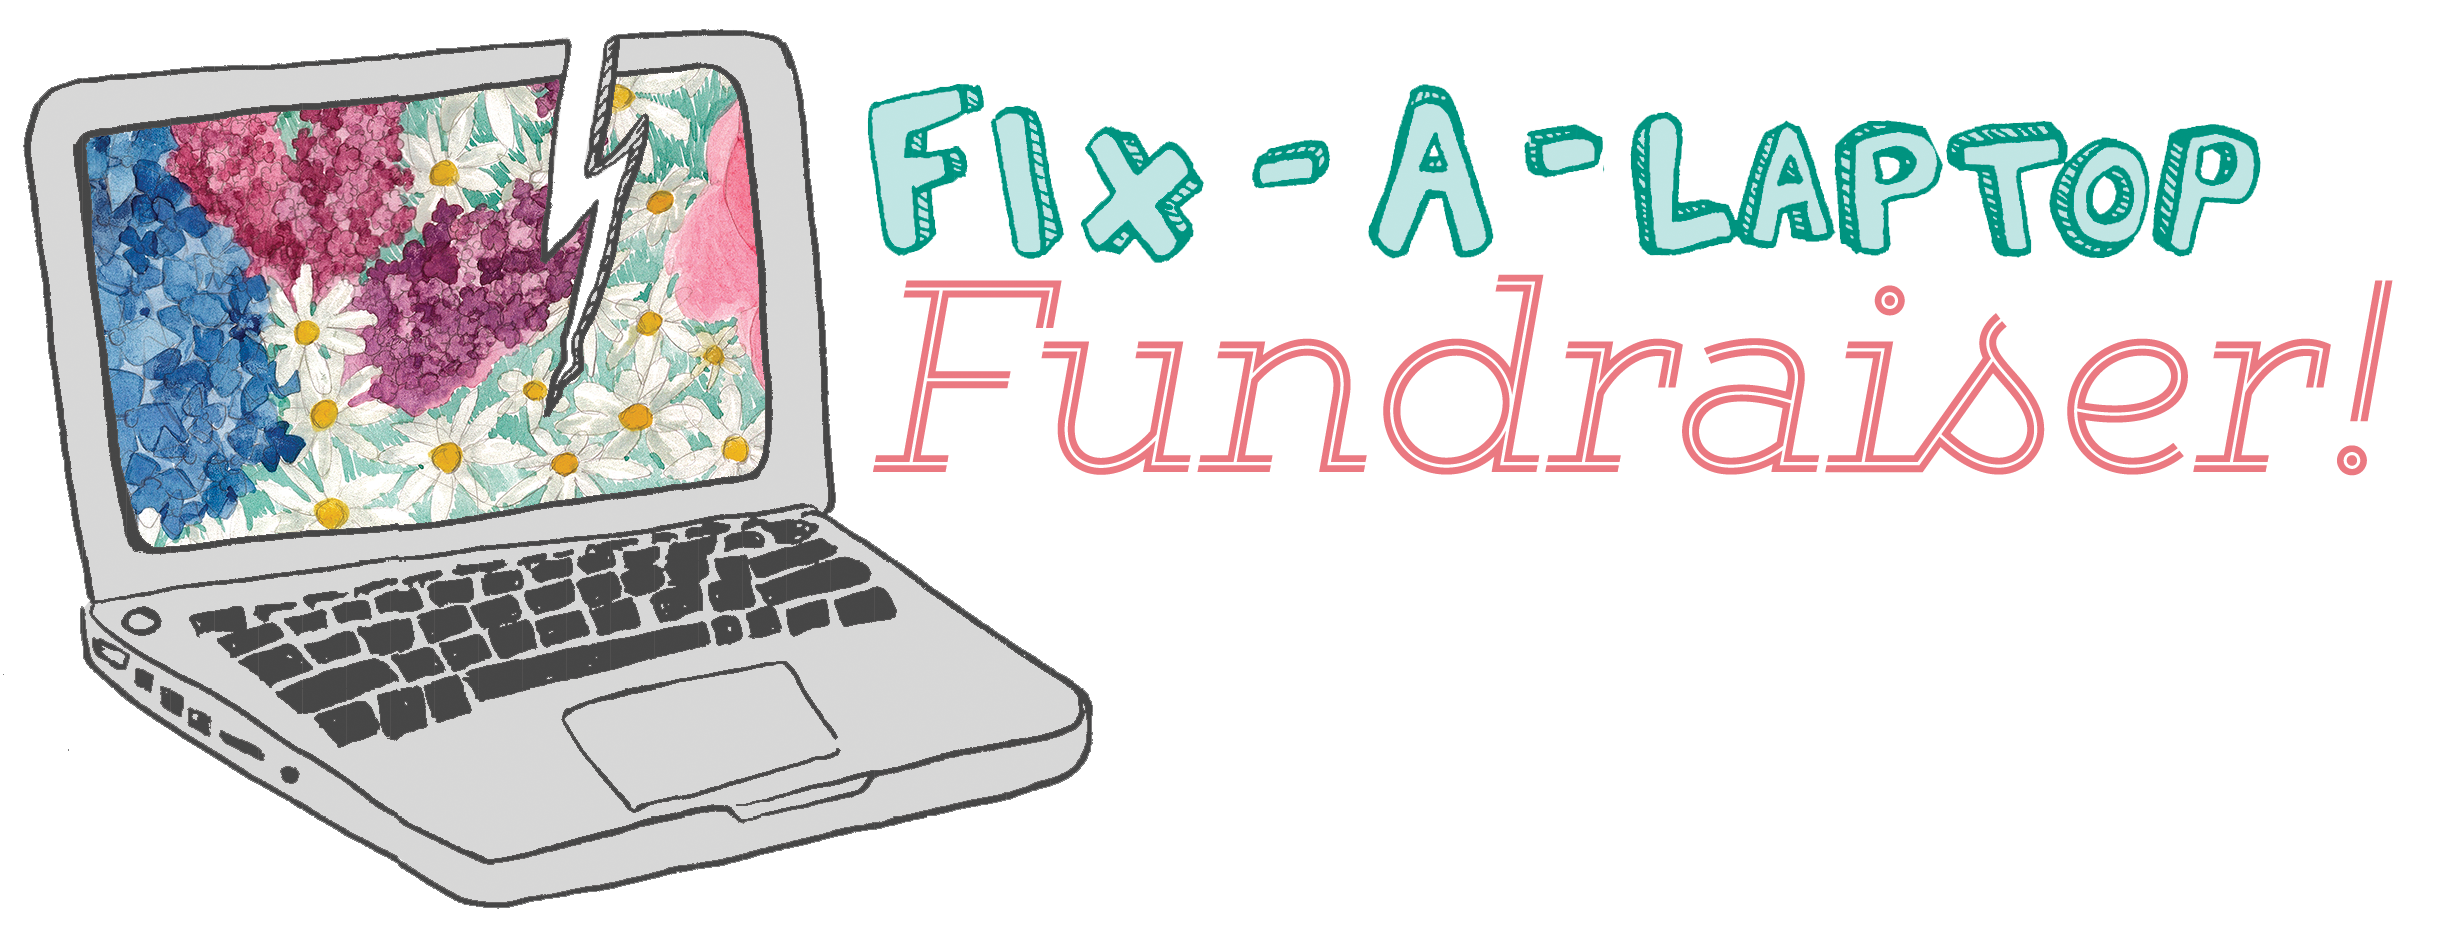 Fundraiser clipart paper money. Fix a laptop indiegogo